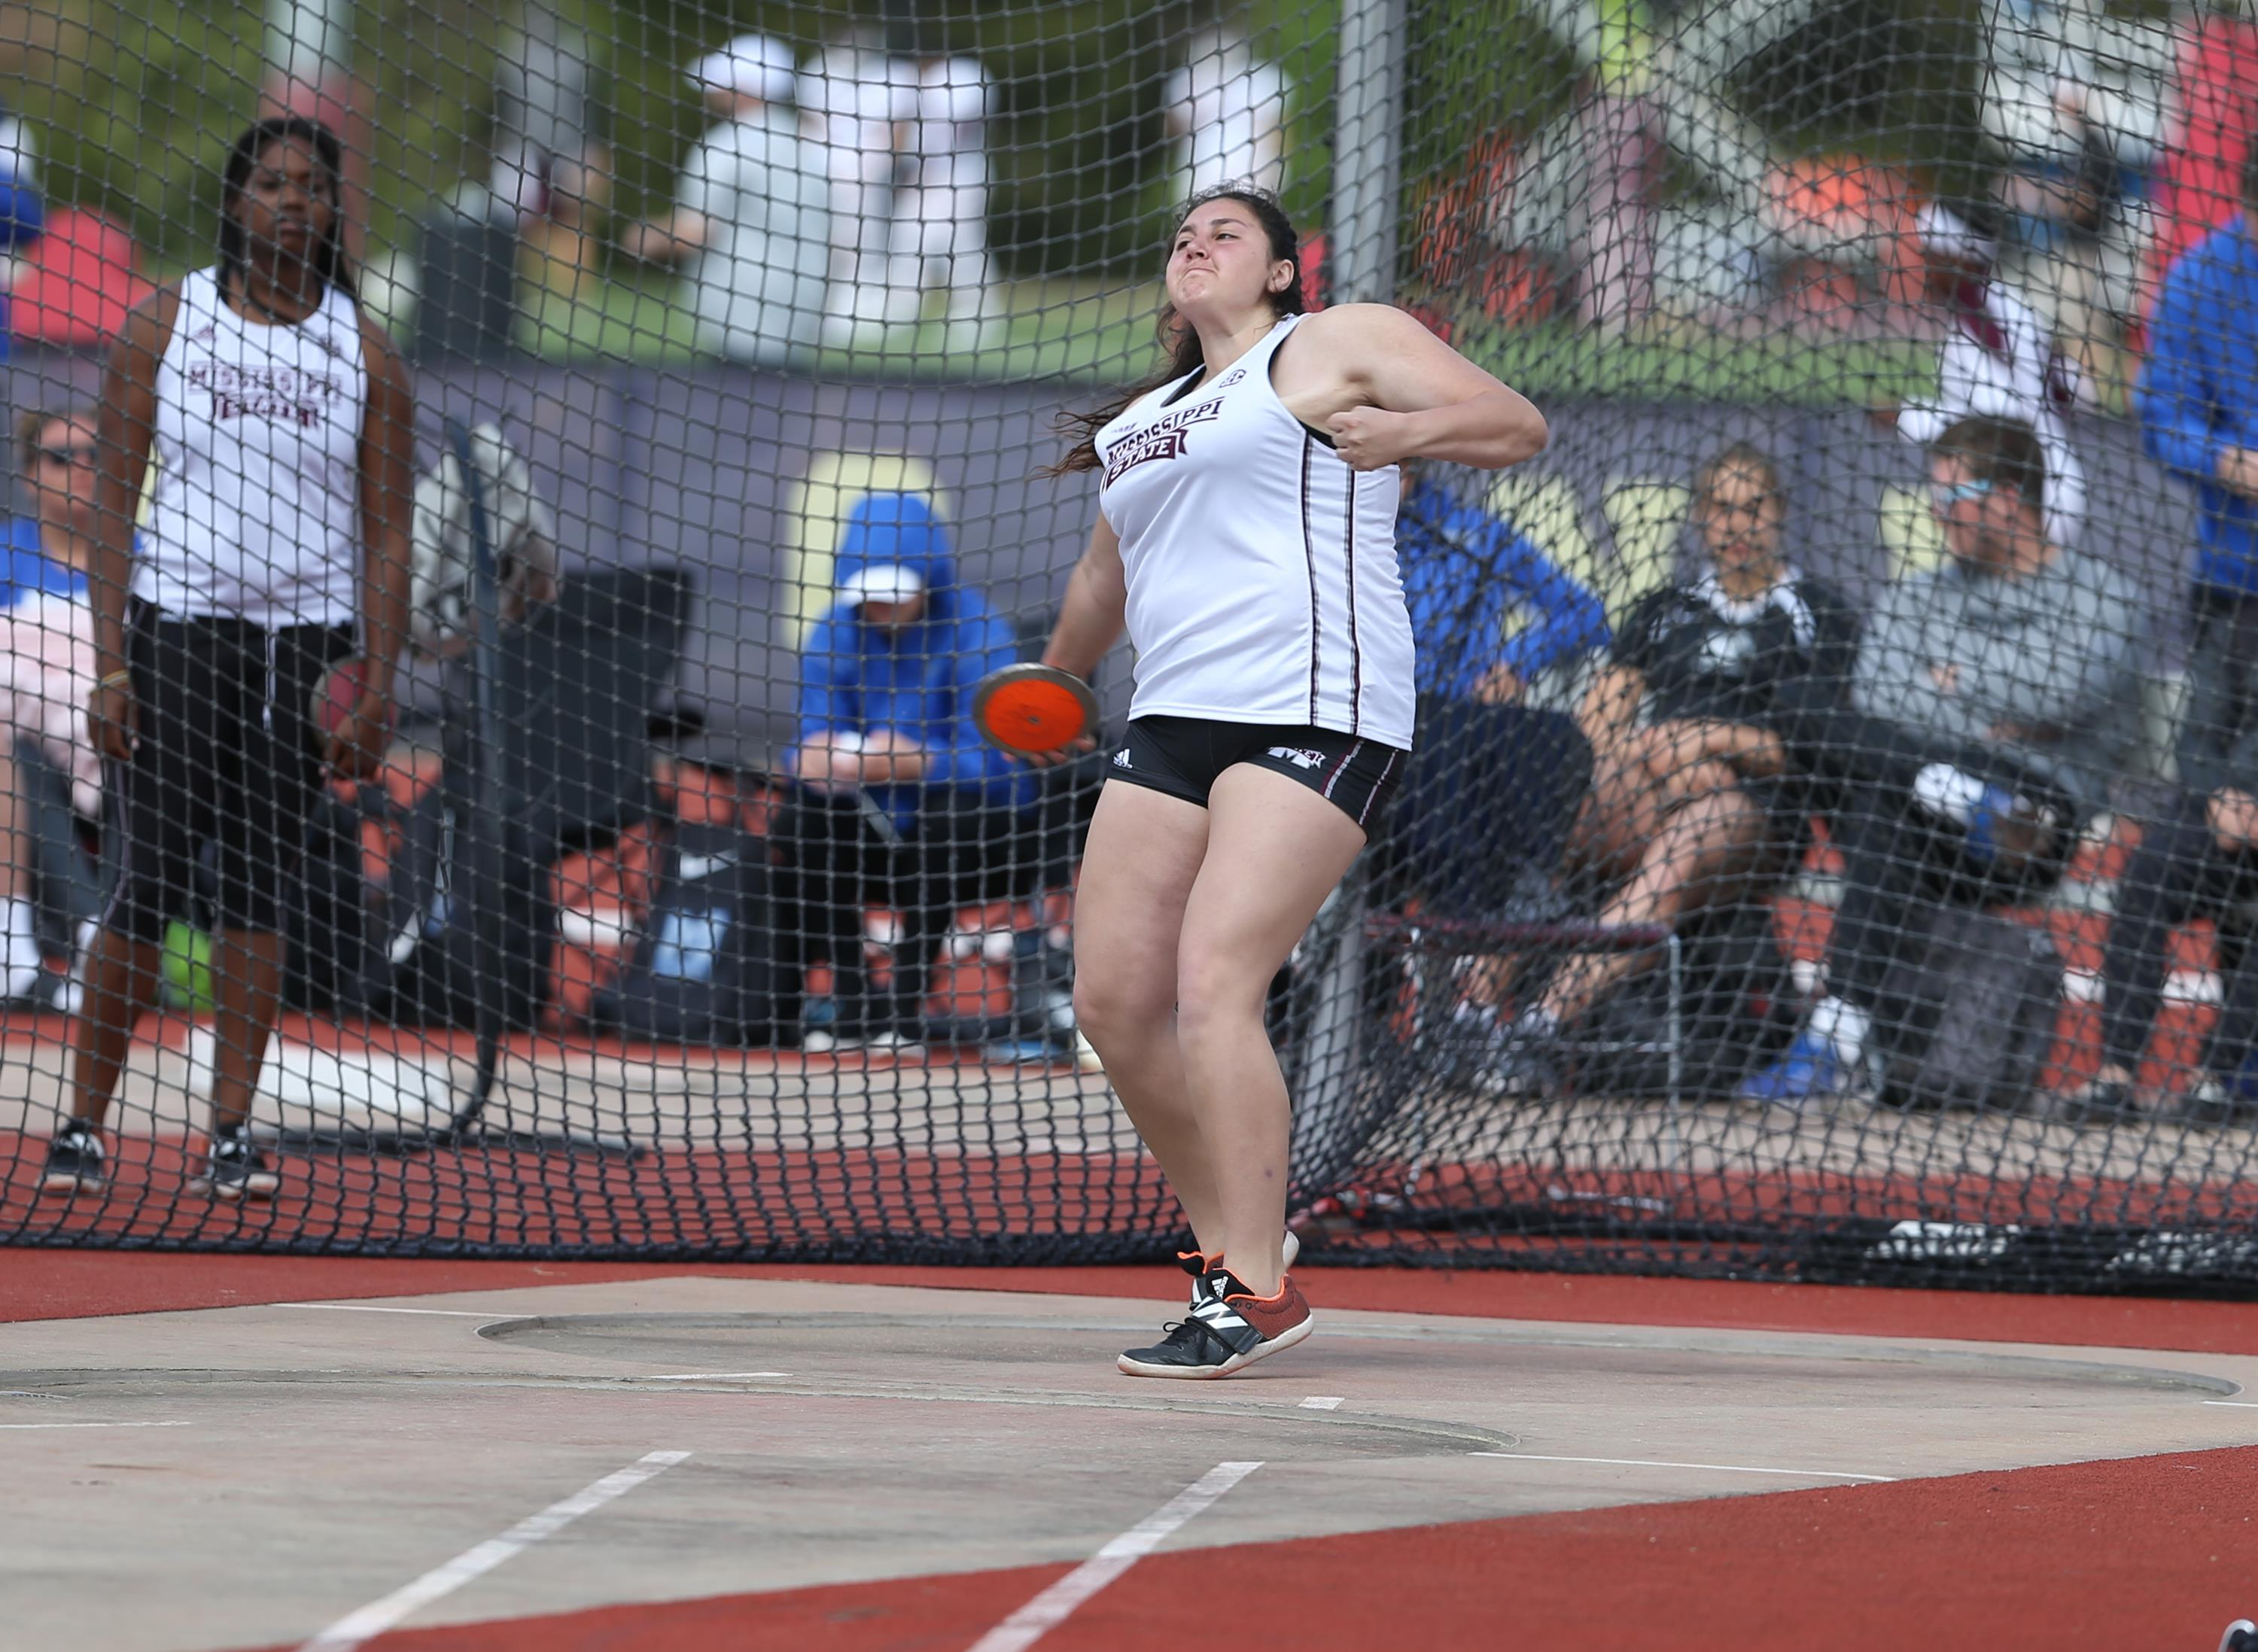 Viveros Sets School Record in Shot Put at Music City Challenge